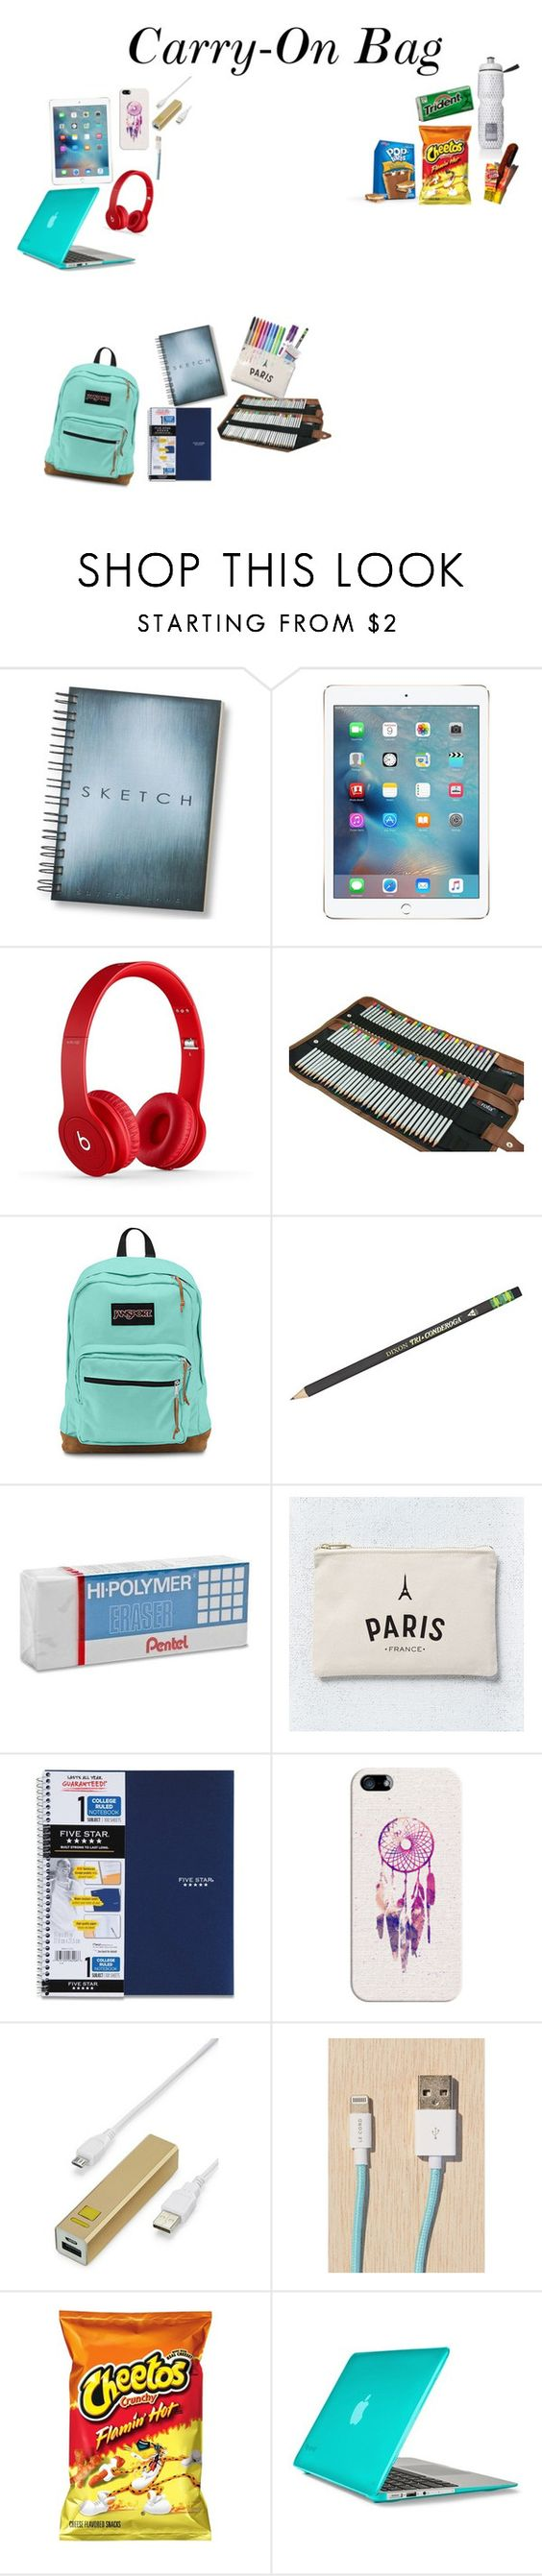 """""""Carry-On Bag"""" by queen26yassy on Polyvore featuring JanSport, Paper Mate, Pentel, West Elm, Casetify, LMNT, Le Cord, Victoria's Secret and Speck"""